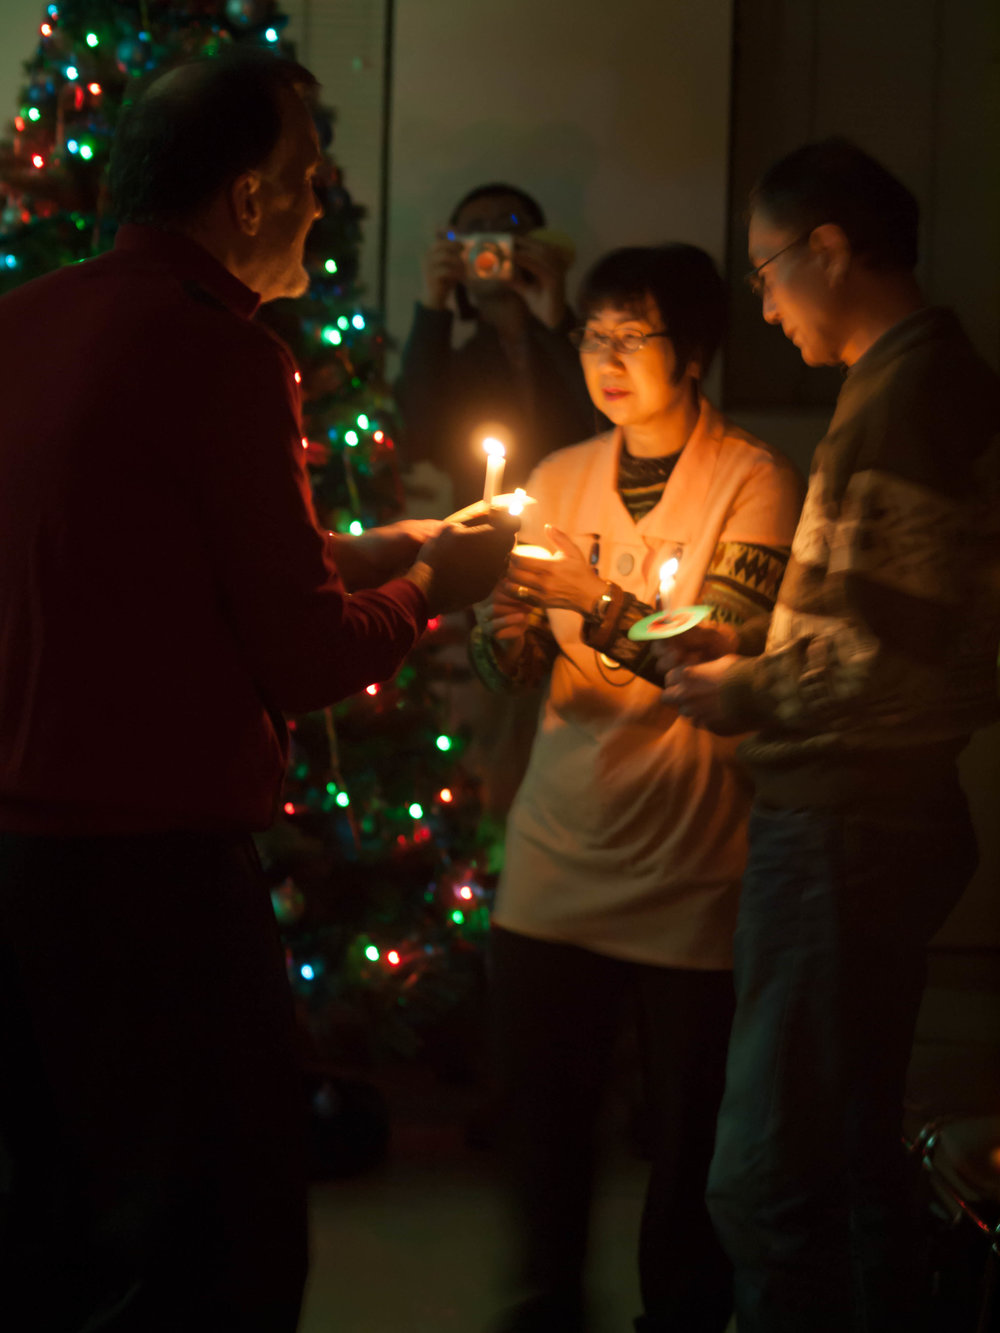 141224Candle light017.jpg